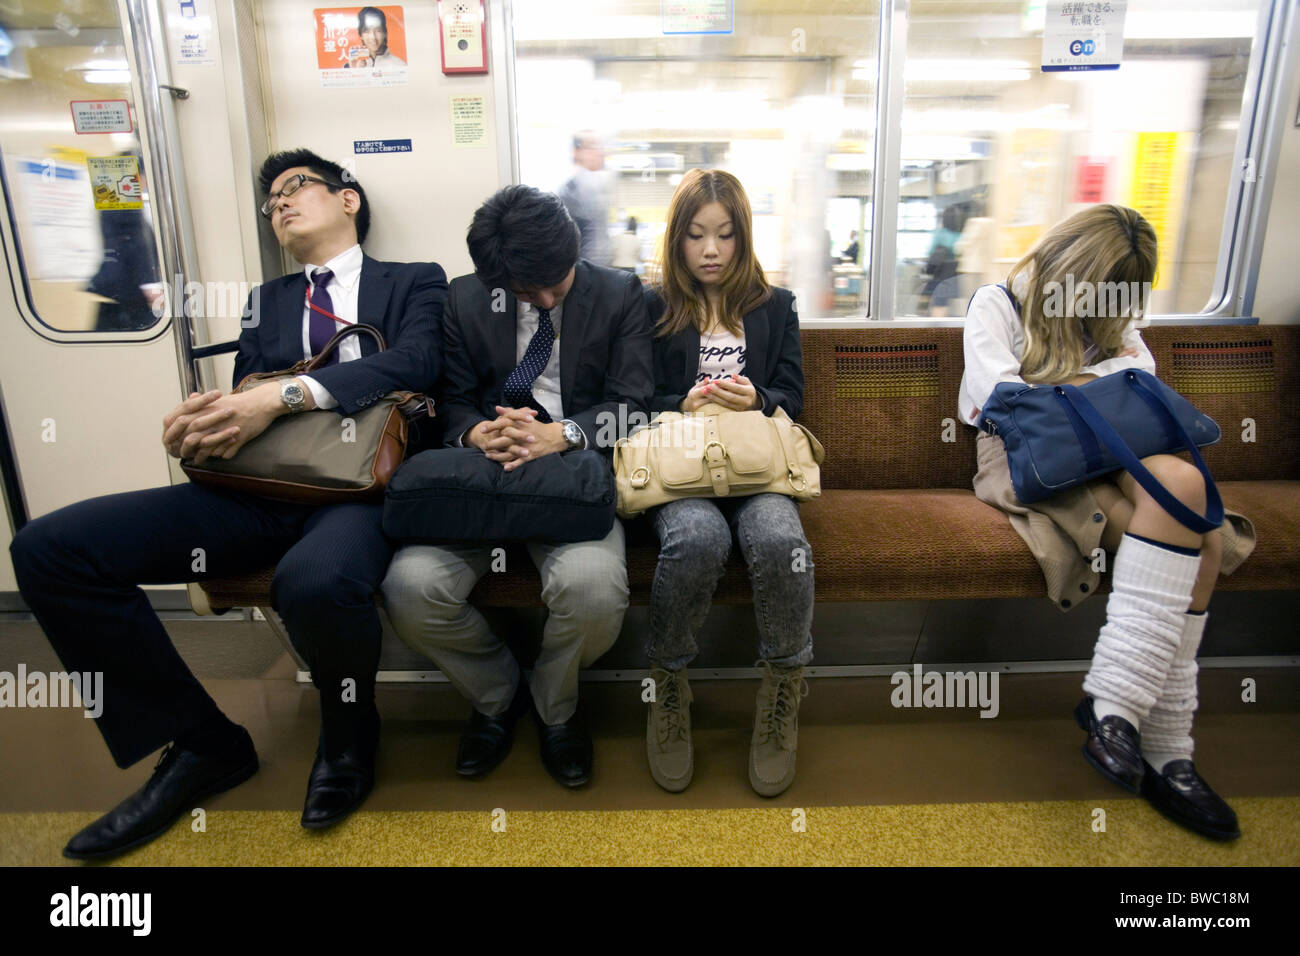 Tired Japanese Commuters High Resolution Stock Photography And Images Alamy